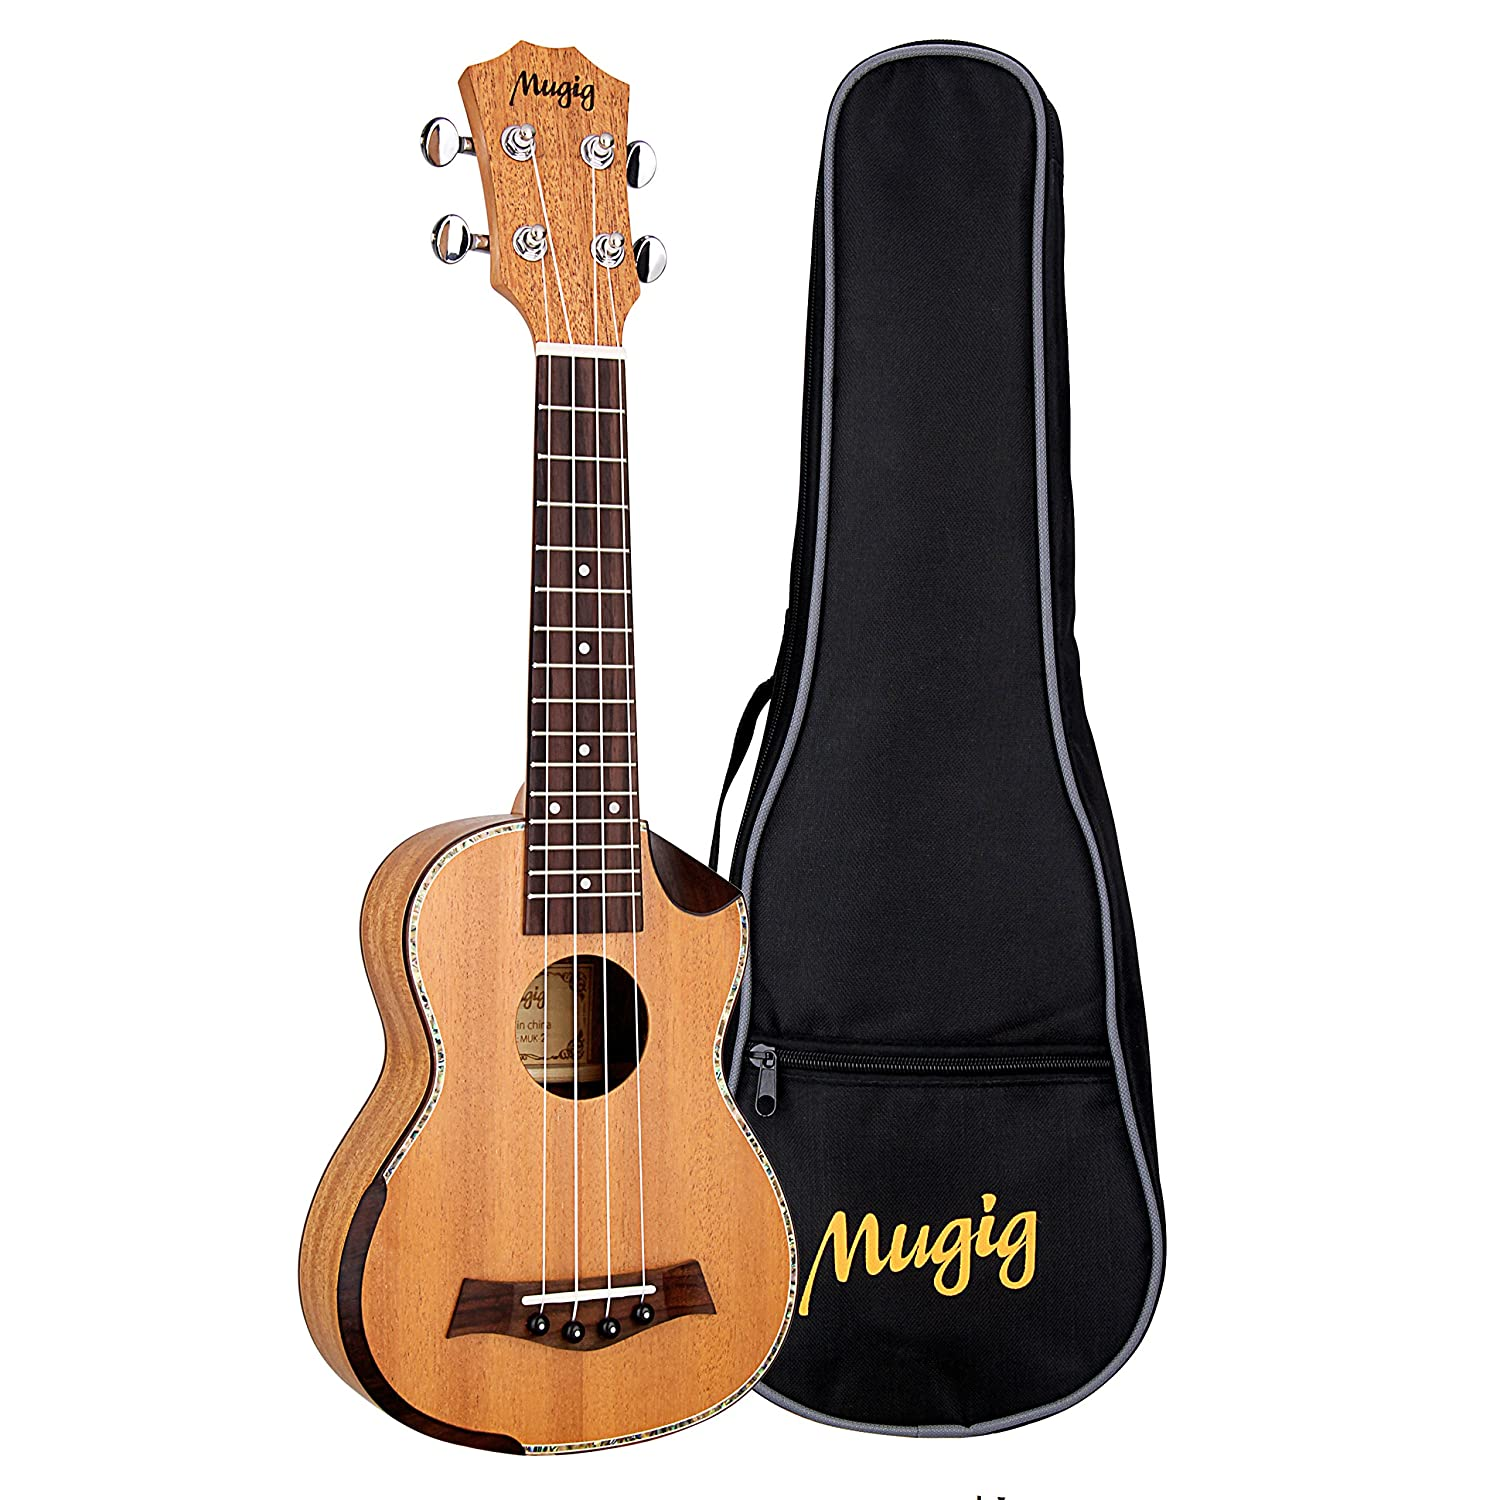 Mugig 21inch Soprano Ukulele Mahogany Body Rosewood Fingerboard Cutaway Design 4 Strings Instrument Italian Aquila Nylon Strings with carrying bag(21 inch)